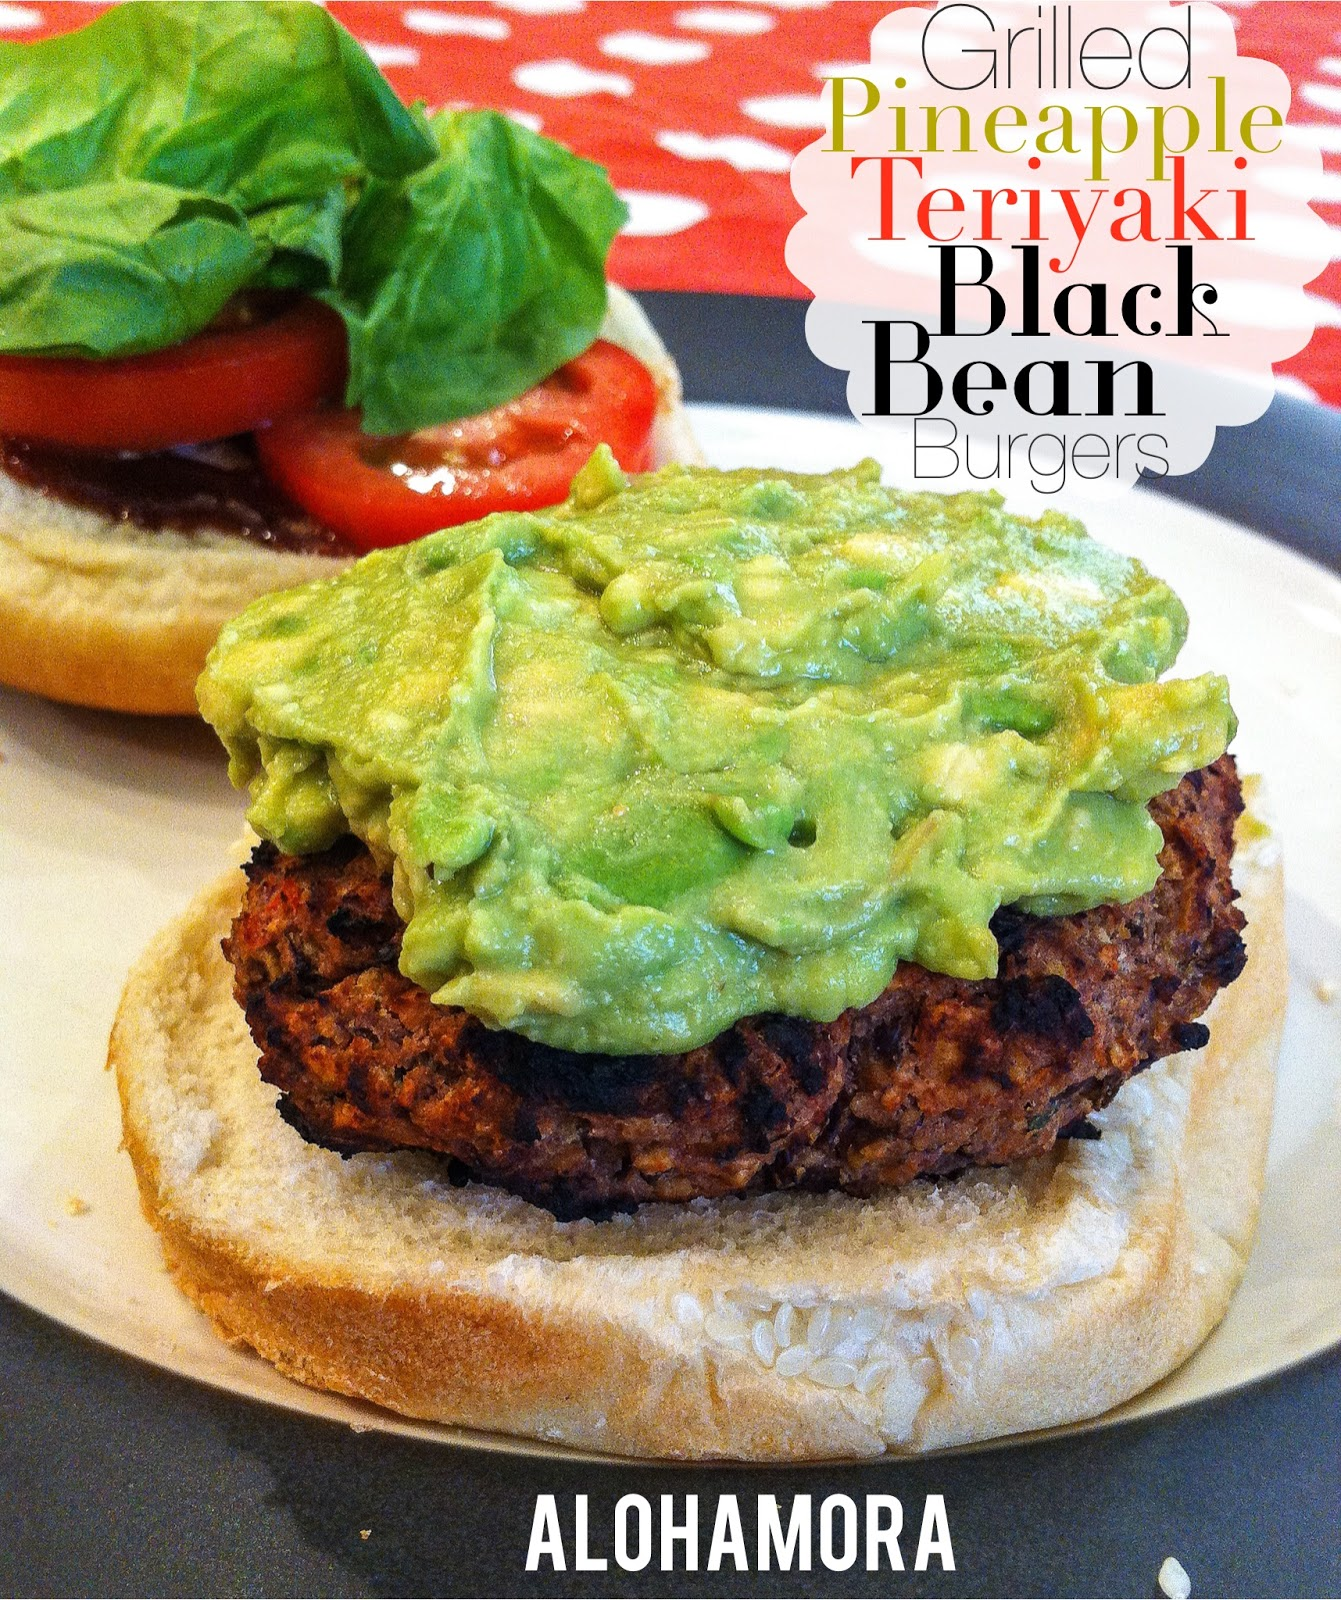 Healthy and delicious Grilled Pineapple Teriyaki Black Bean Burger.  Sweet amazing flavor in a hearty black bean burger.  Even meat eaters will love these.  Alohamora Open a Book http://www.alohamoraopenabook.blogspot.com/